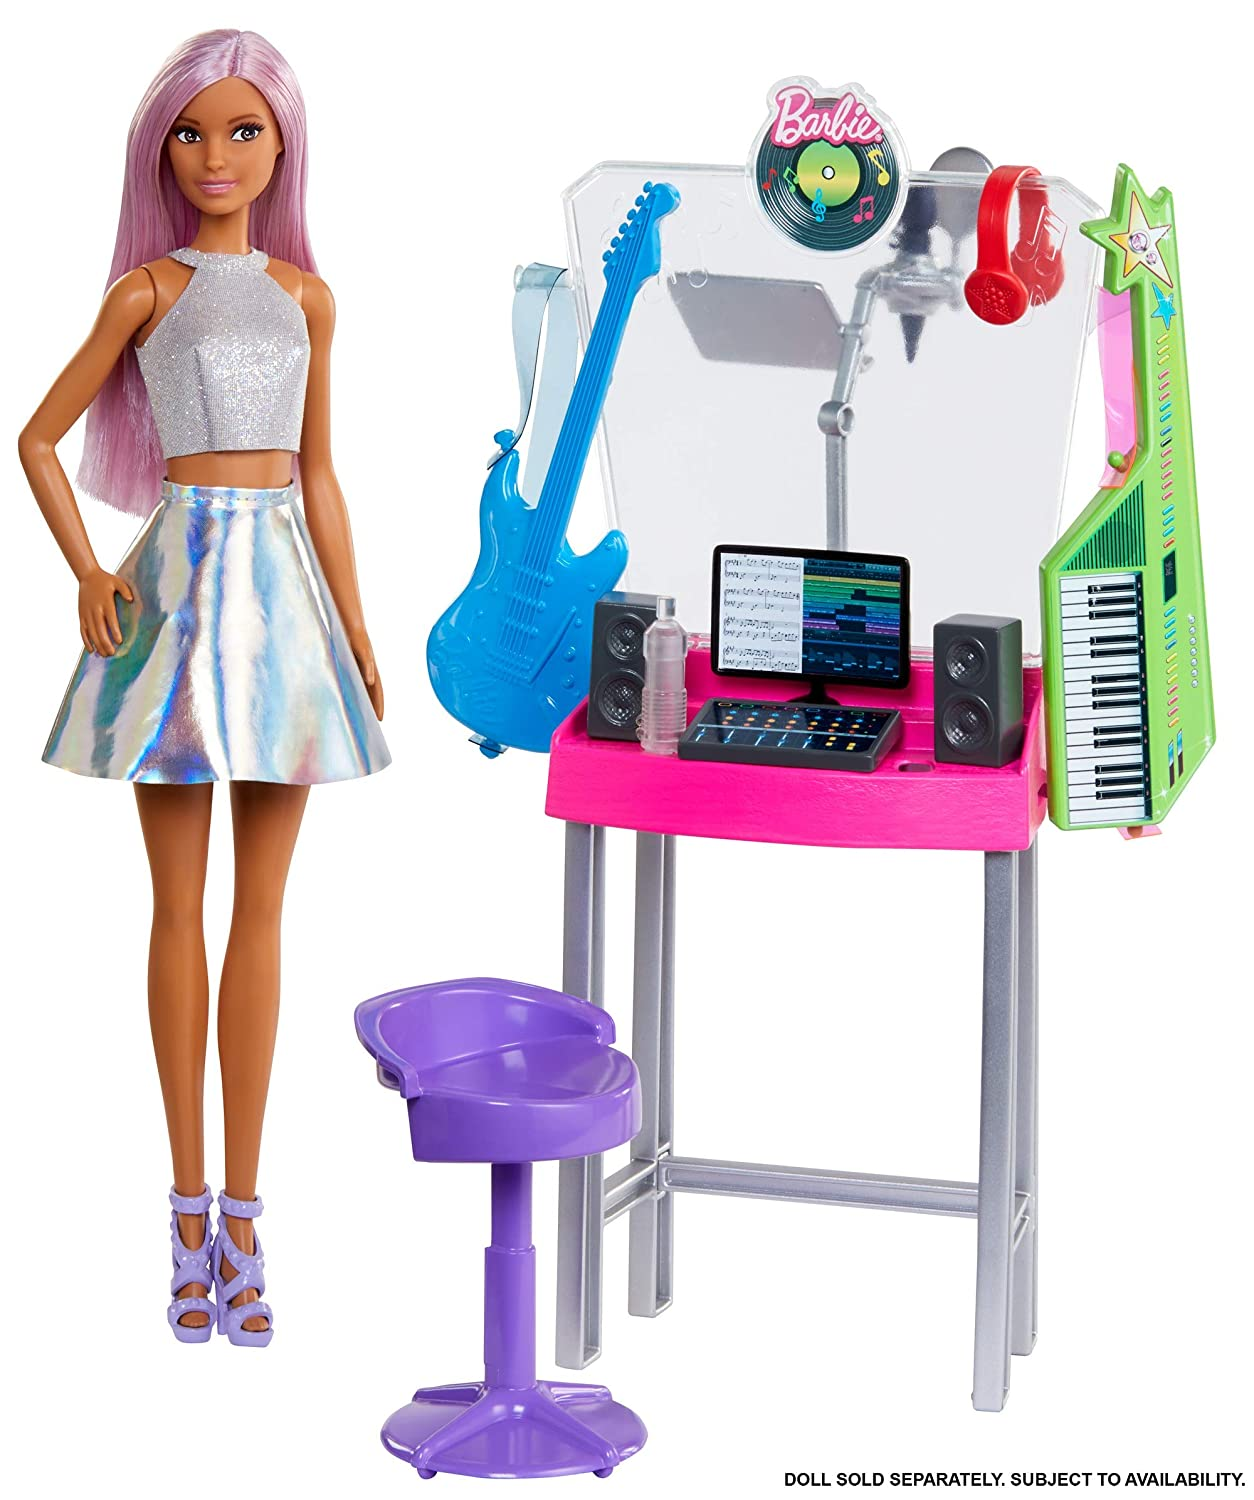 Amazon.com: Barbie Career Places Playsets with Job Themes ...